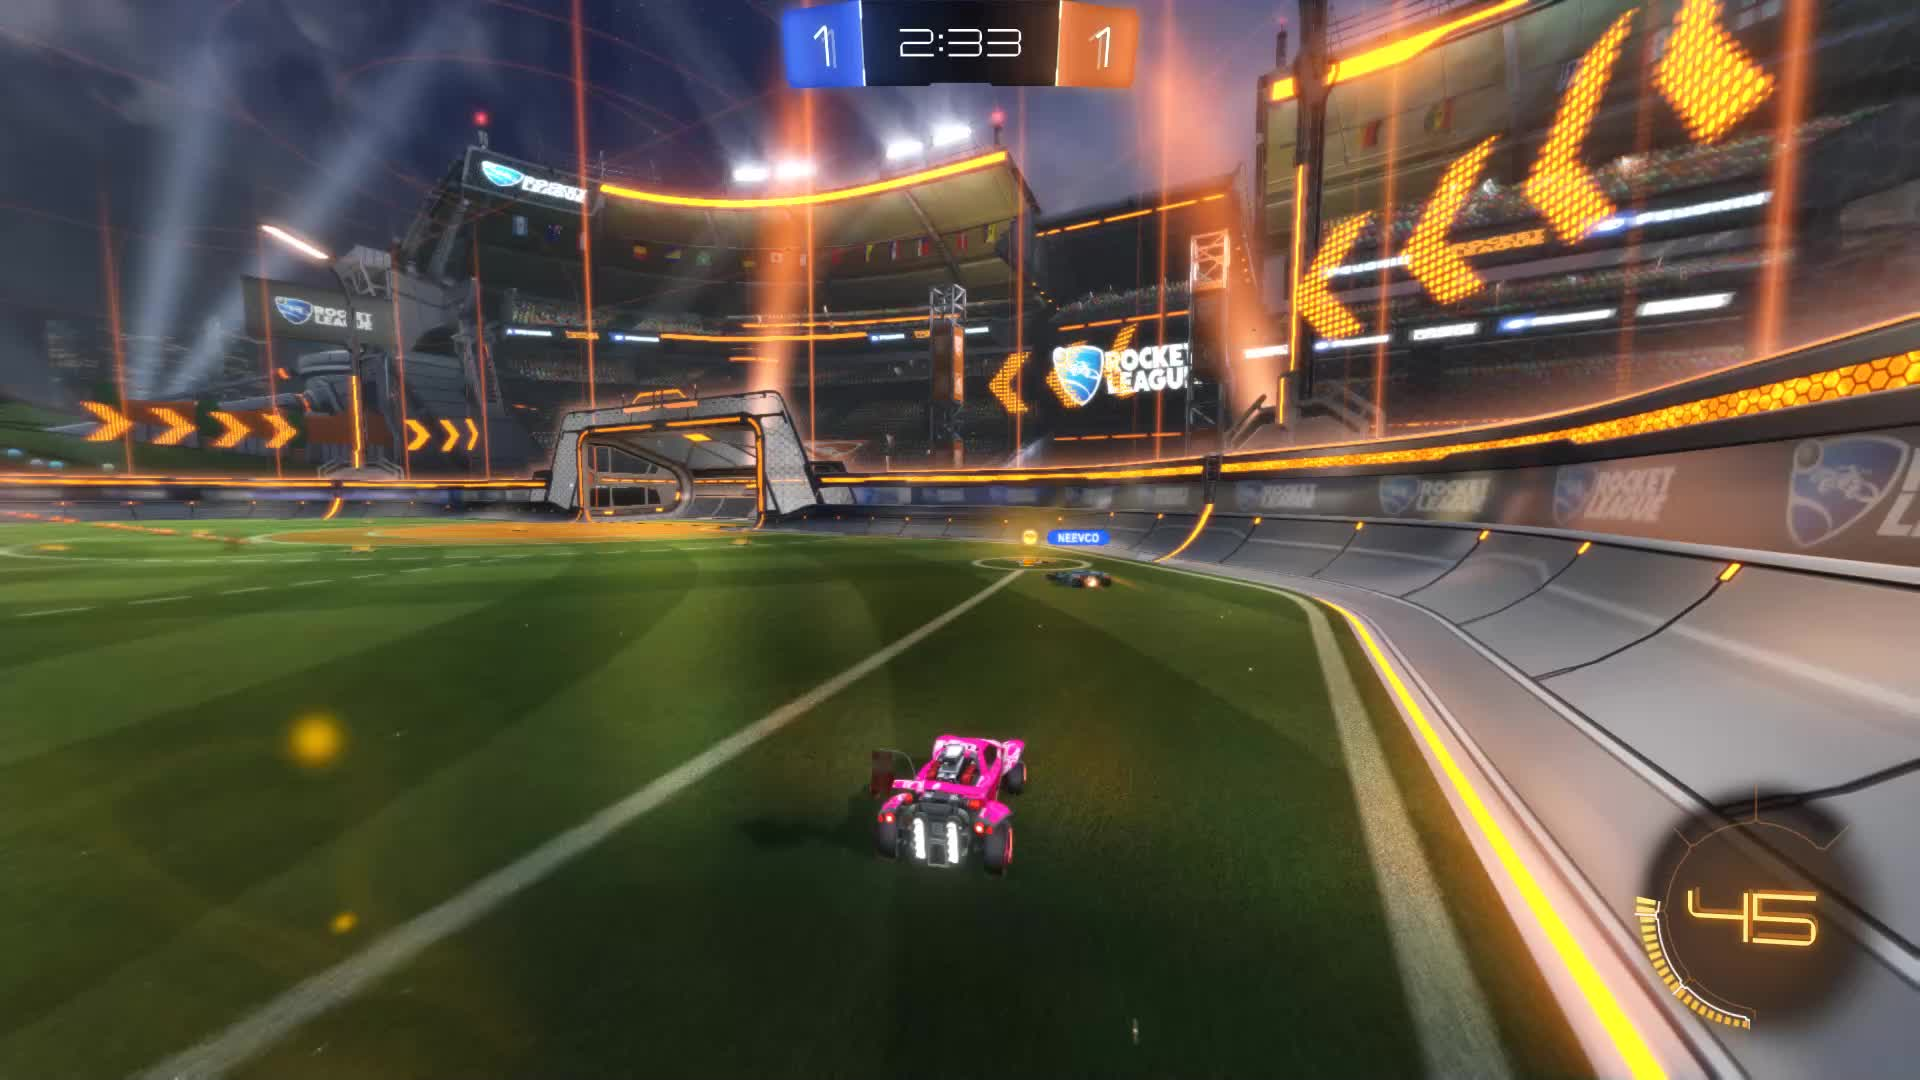 Gif Your Game, GifYourGame, Goal, Rocket League, RocketLeague, Snakes, Goal 3: Snakes GIFs